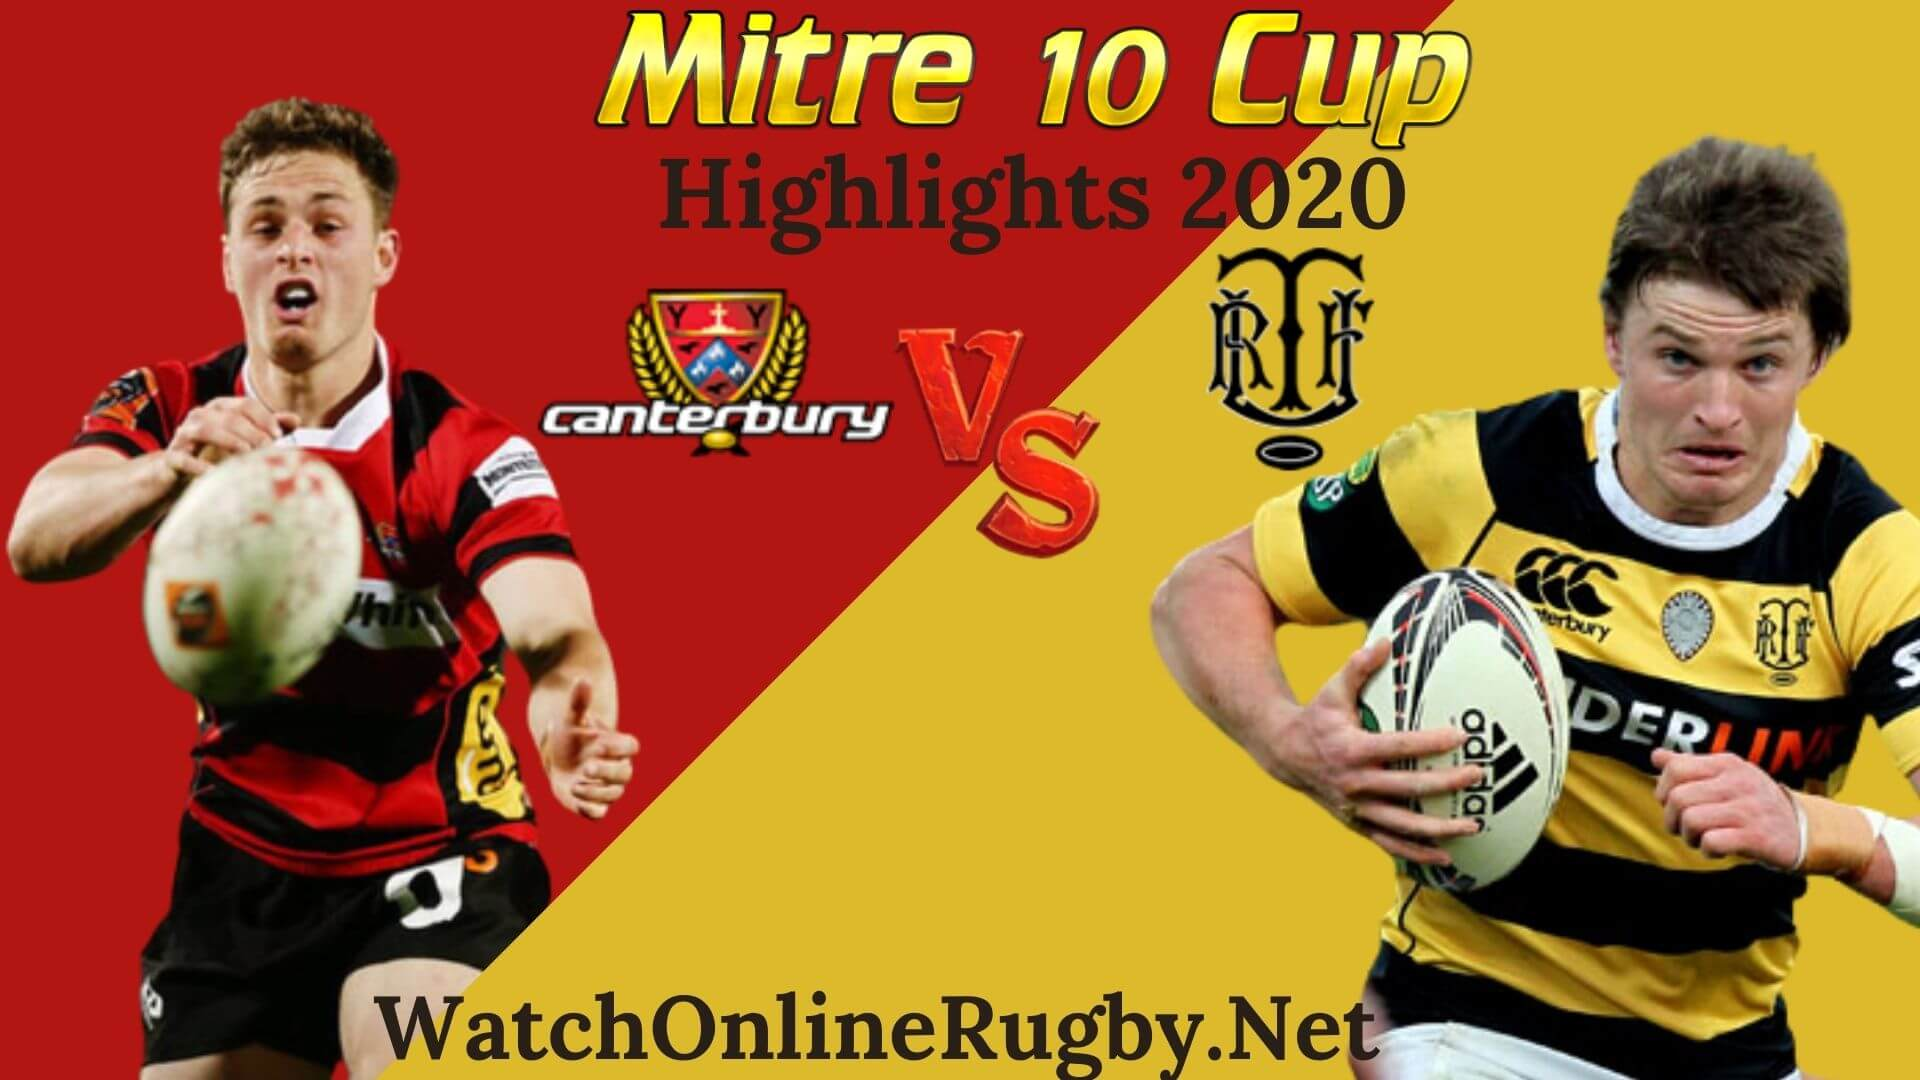 Canterbury vs Taranaki RD 2 Highlights 2020 M10 Cup